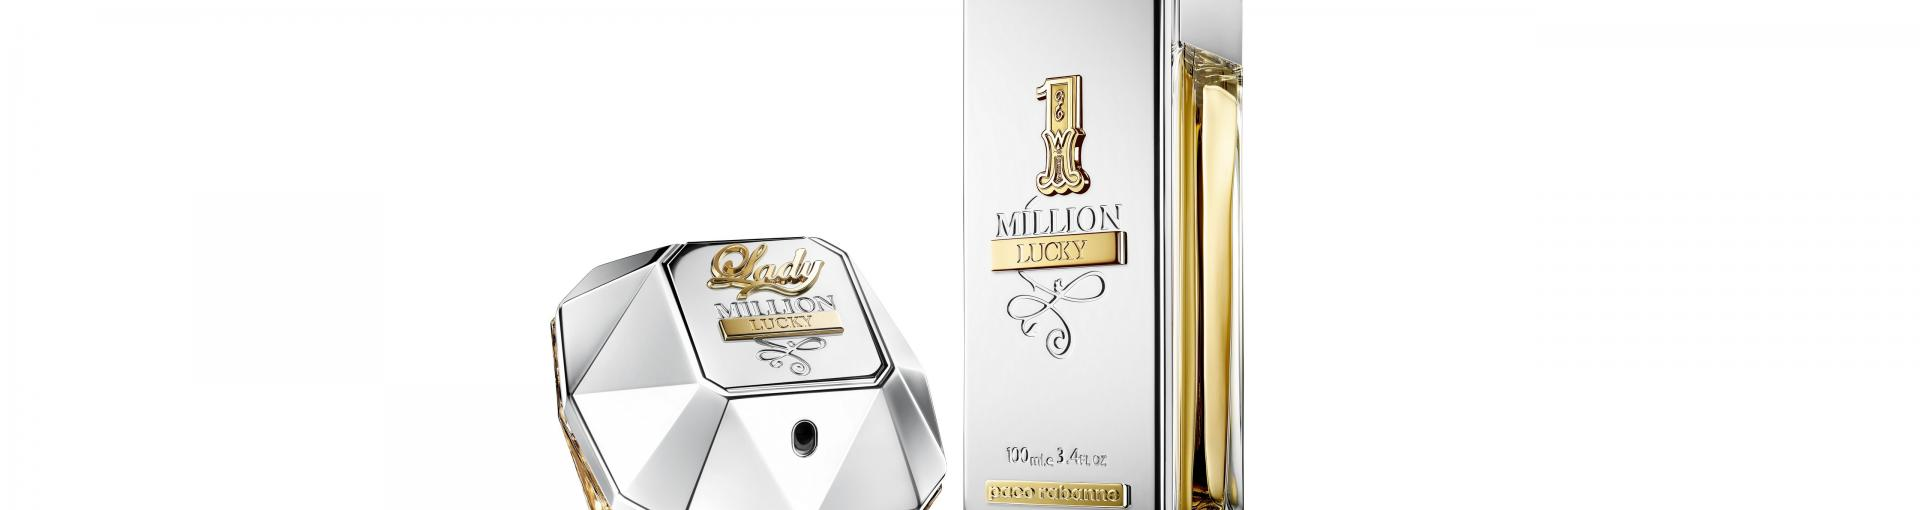 1 Million Lucky i Lady Million Lucky - nowe zapachy Paco Rabanne